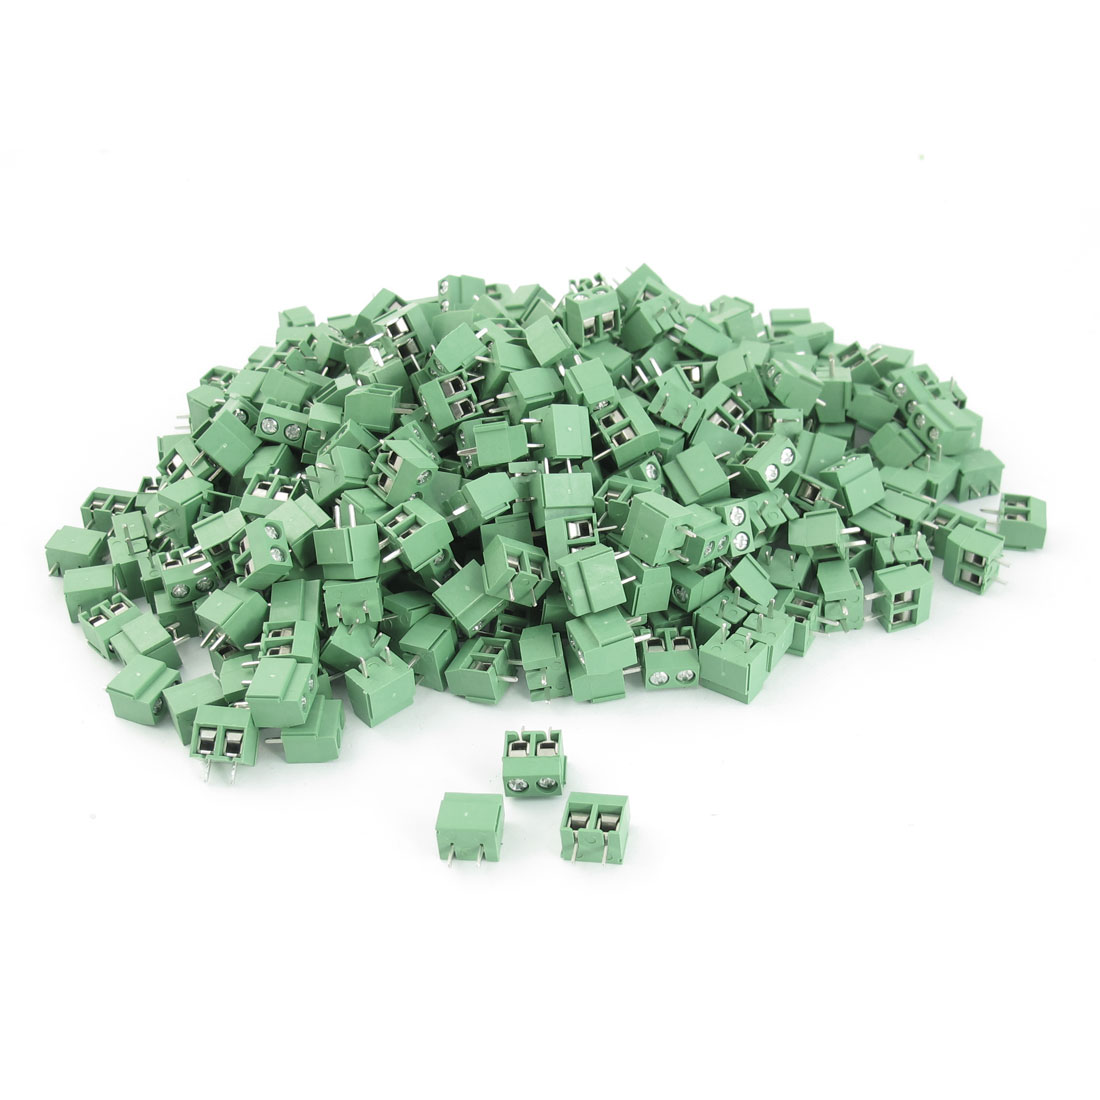 400Pcs 300V 10A 5mm Pitch 26-16AWG Through Hole PCB Surface Mount Plastic Screw Terminal Block Green